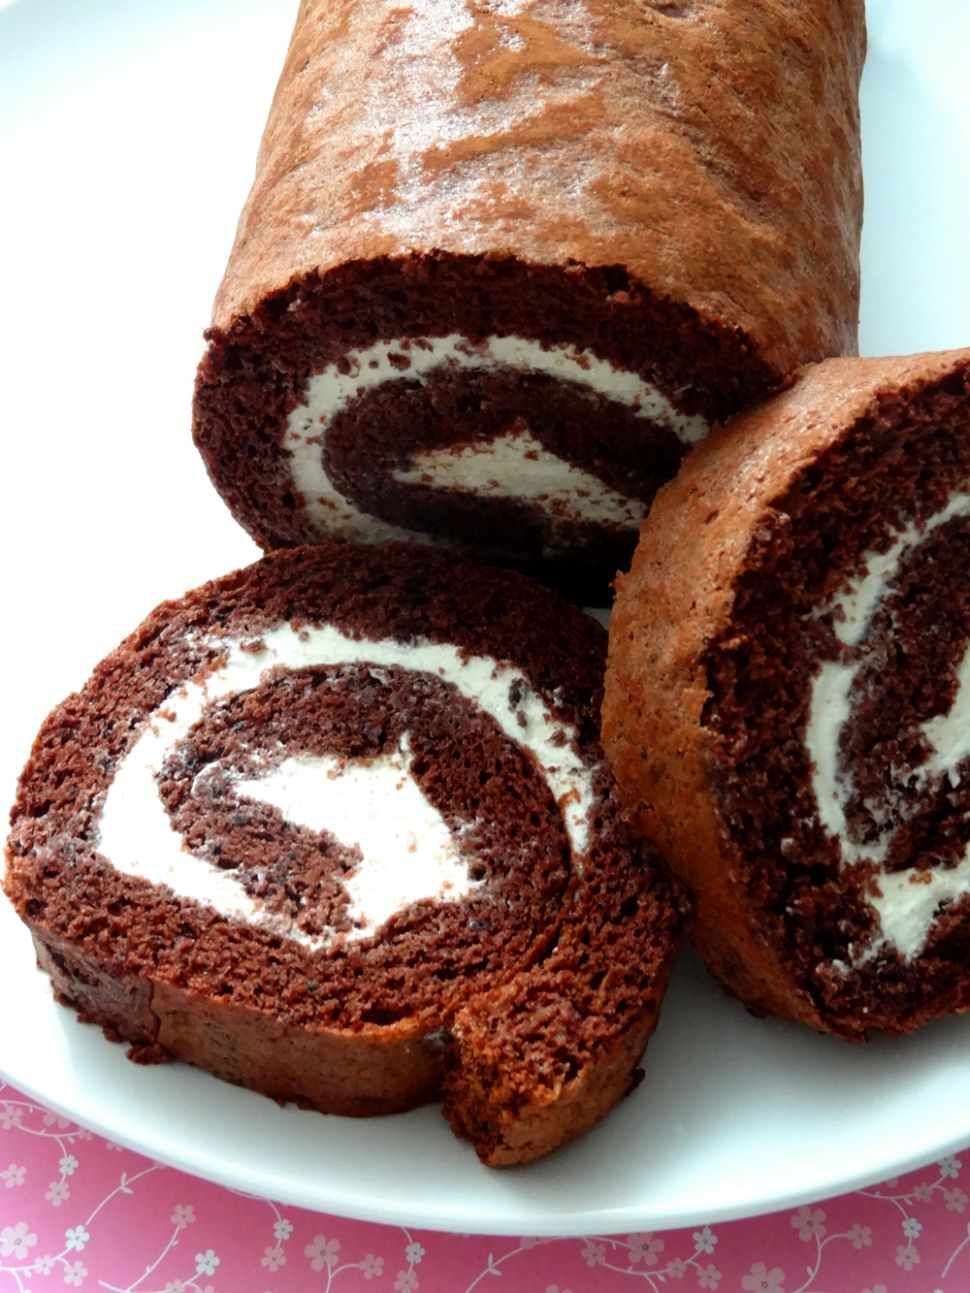 Chocolate Swiss Roll Recipe | Life is short, Eat sweet